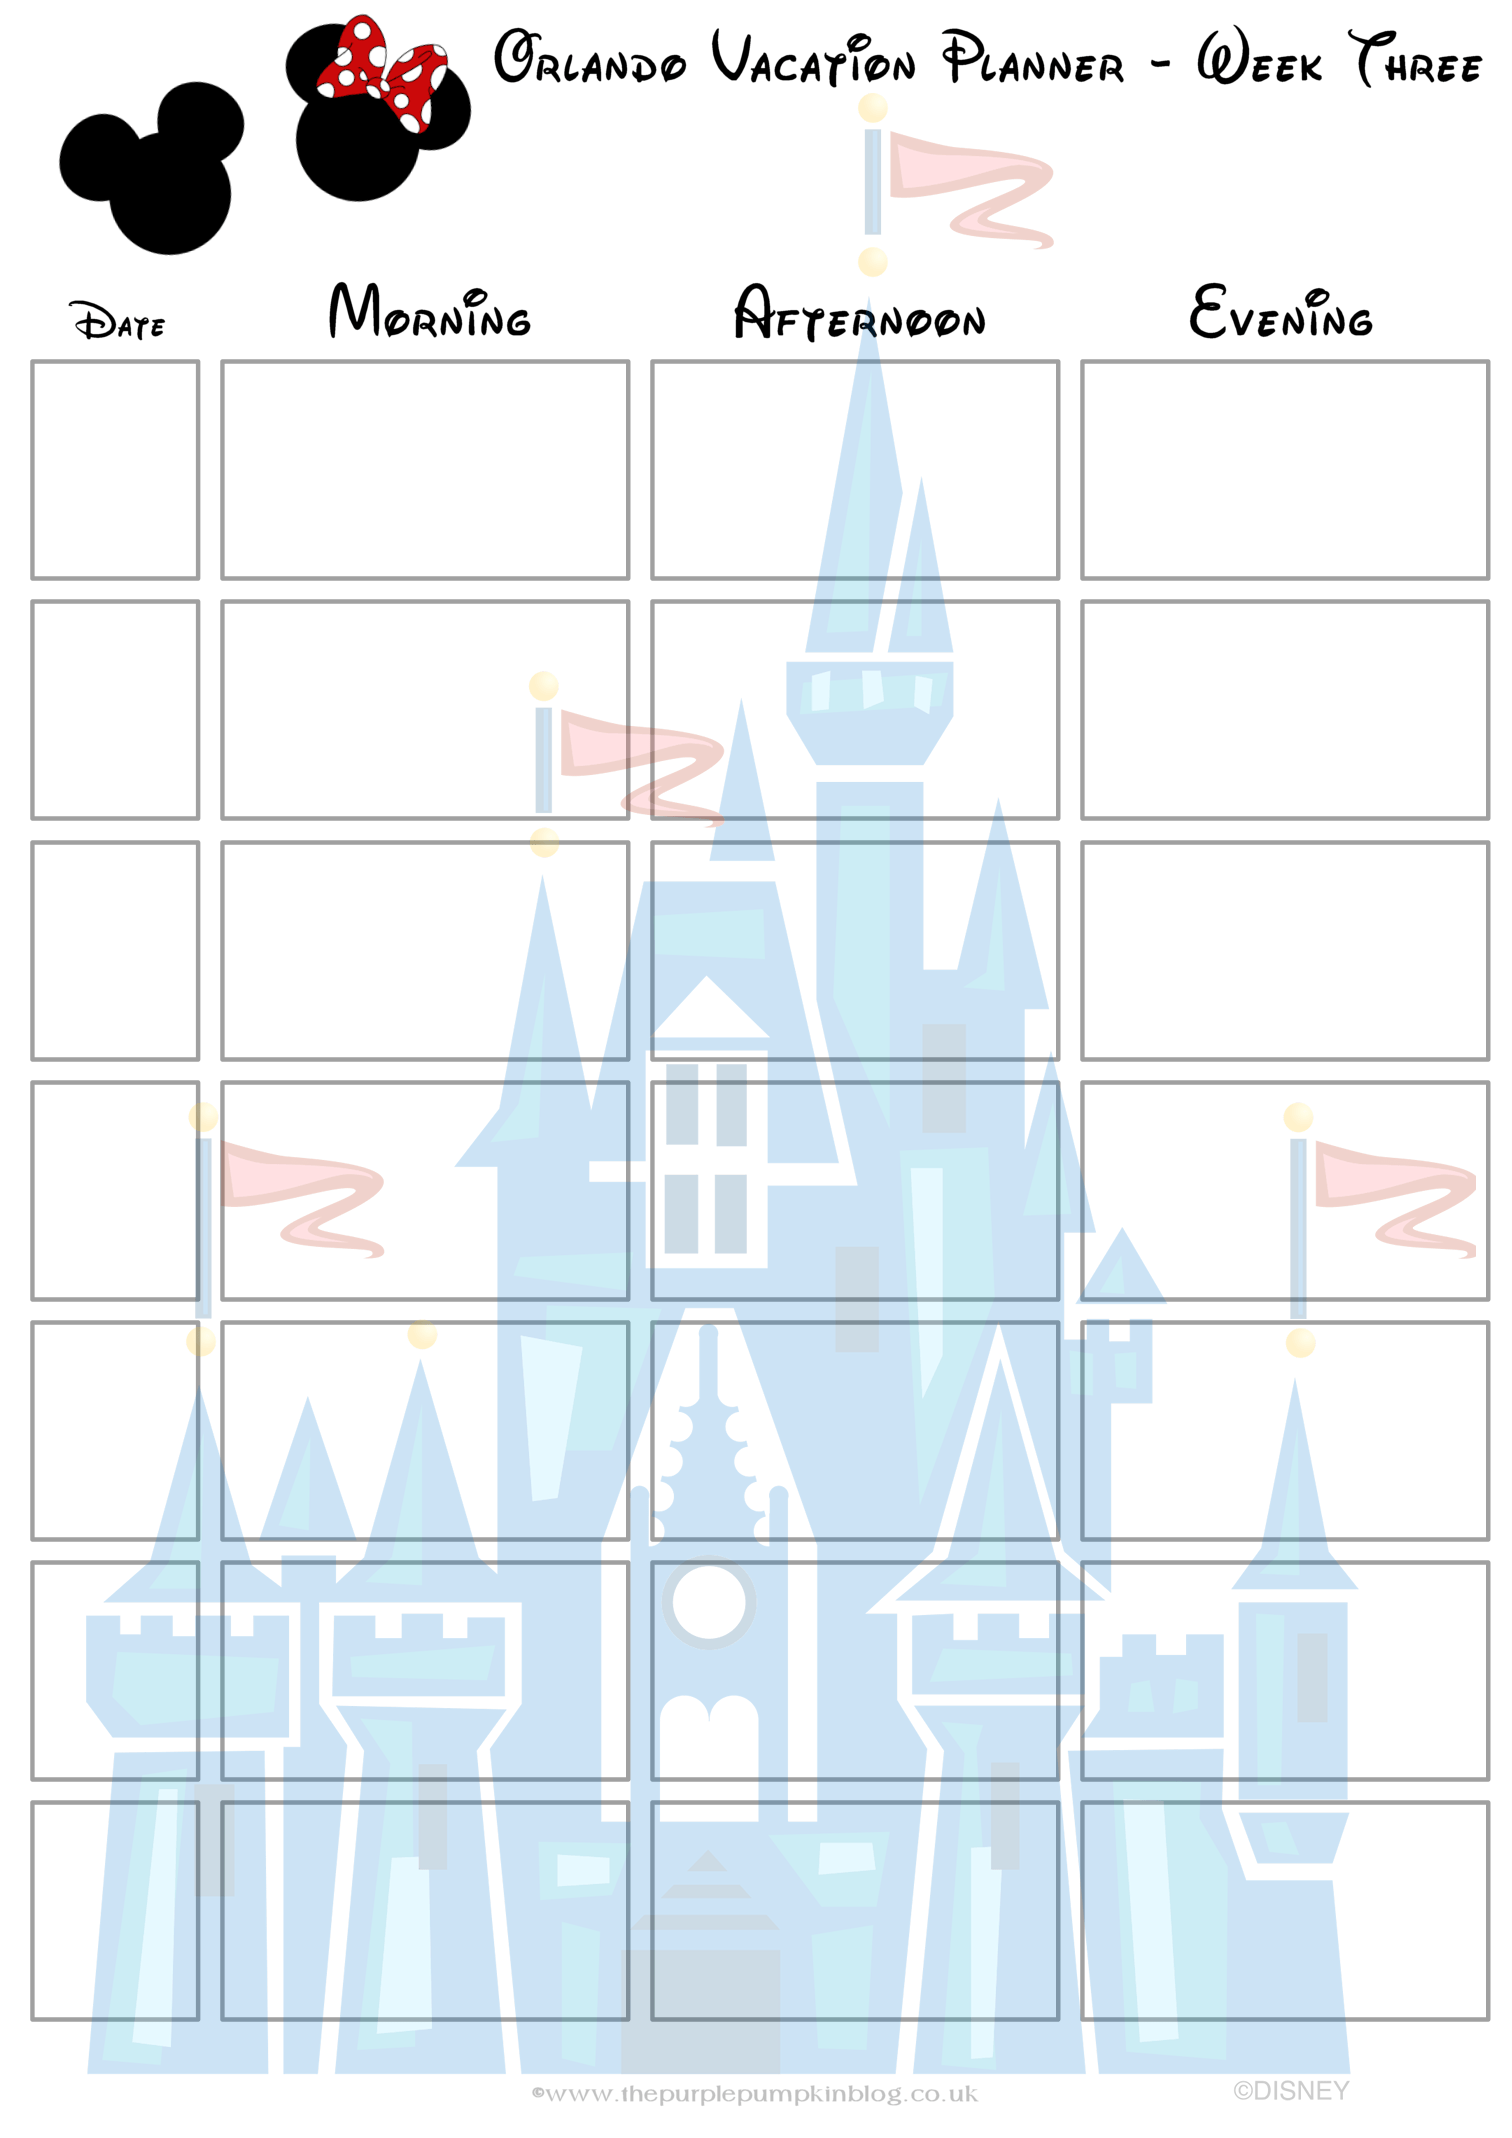 Orlando Walt Disney World Vacation Planner